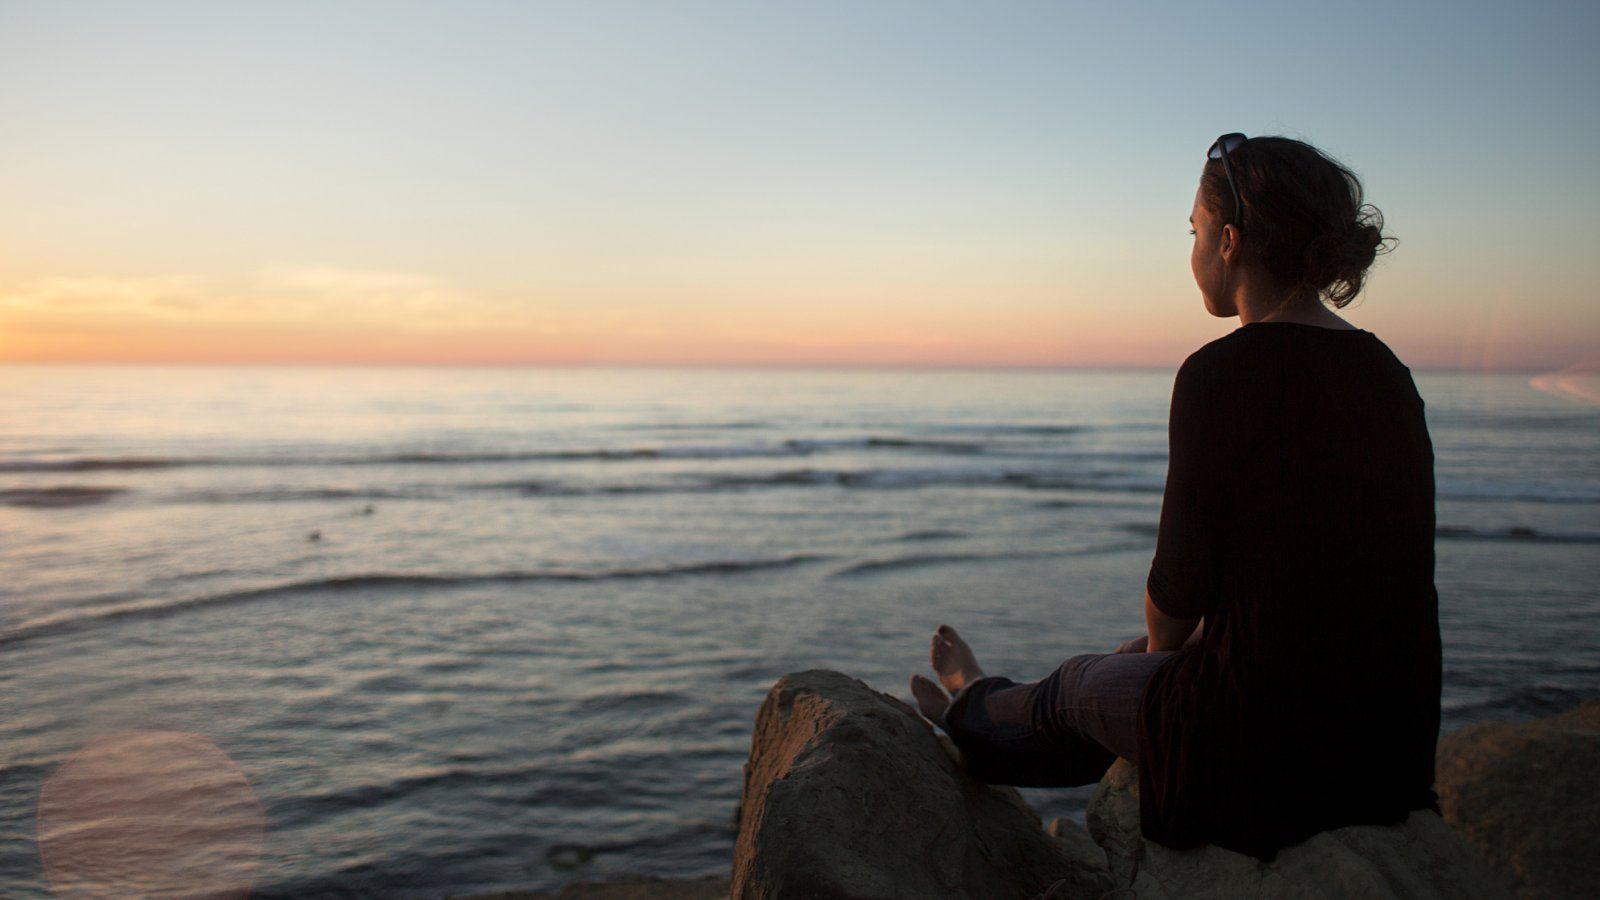 A PLNU student sits on the edge of Sunset Cliffs gazing out on the sunset over the Pacific Ocean